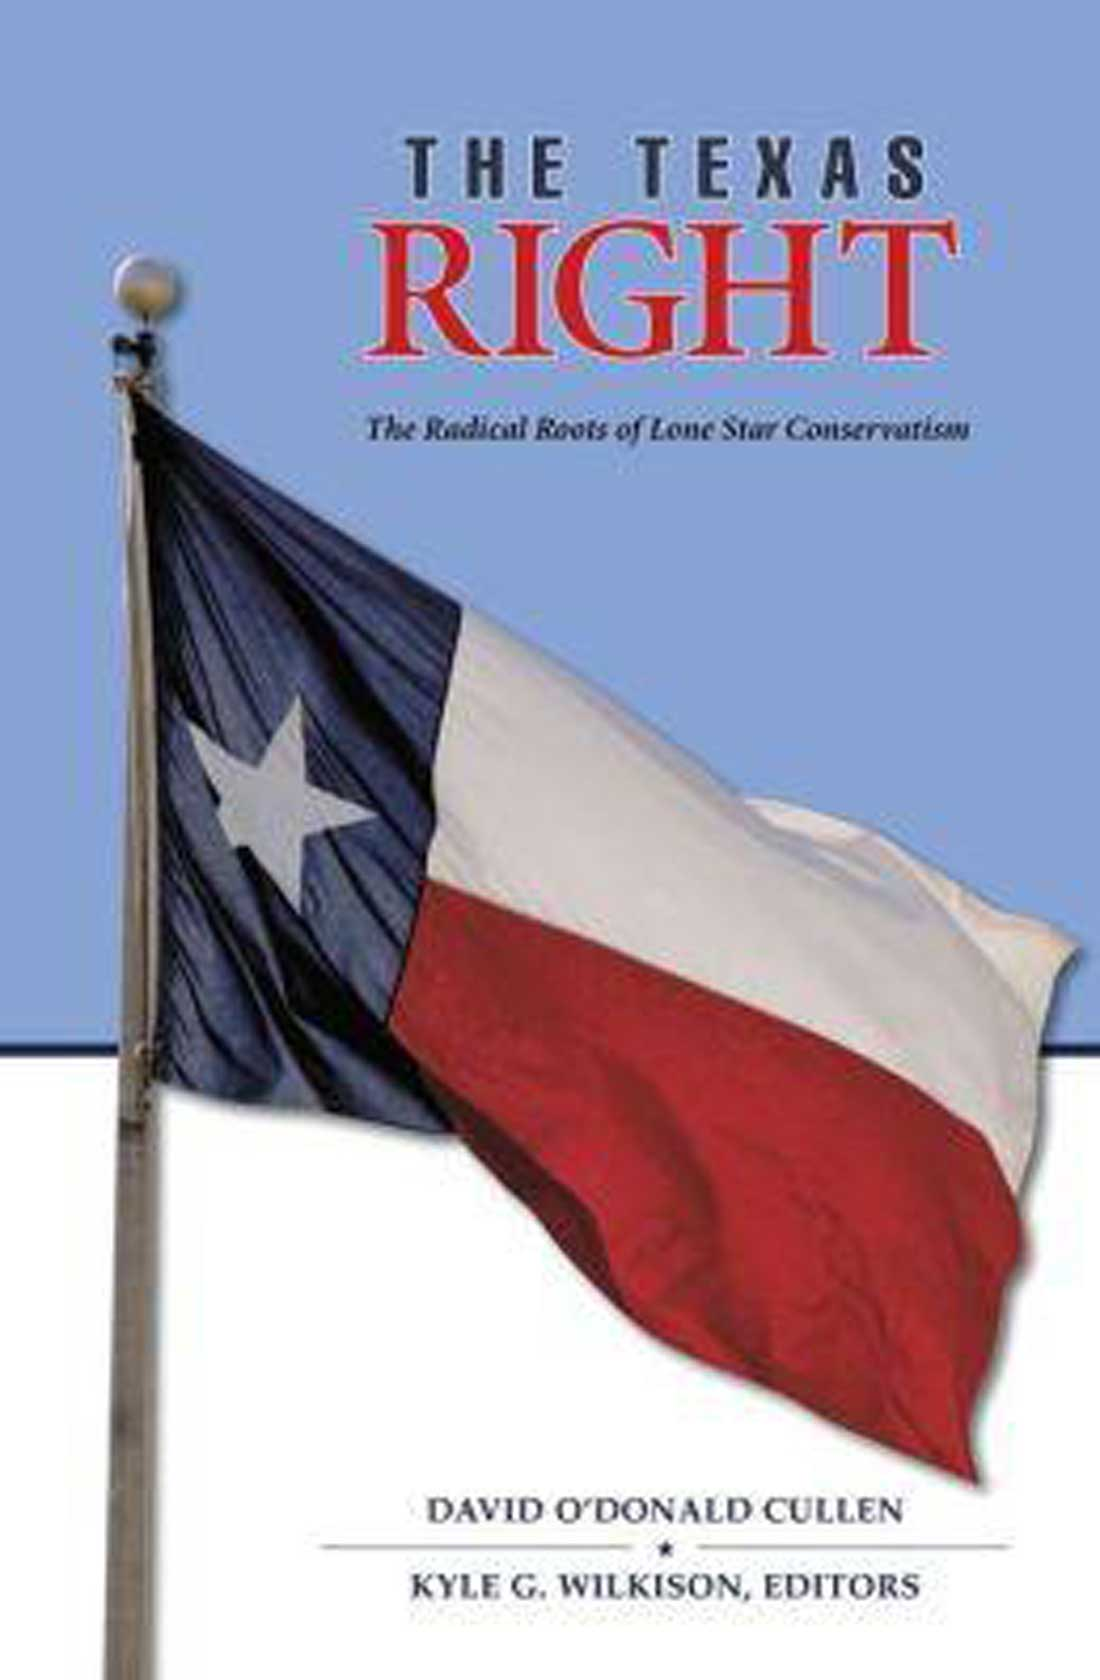 The Texas Right: The Radical Roots of Lone Star Conservatism, edited by David O'Donald Cullen and Kyle G. Wilkison. Texas A&M University Press, 208 pps. $25